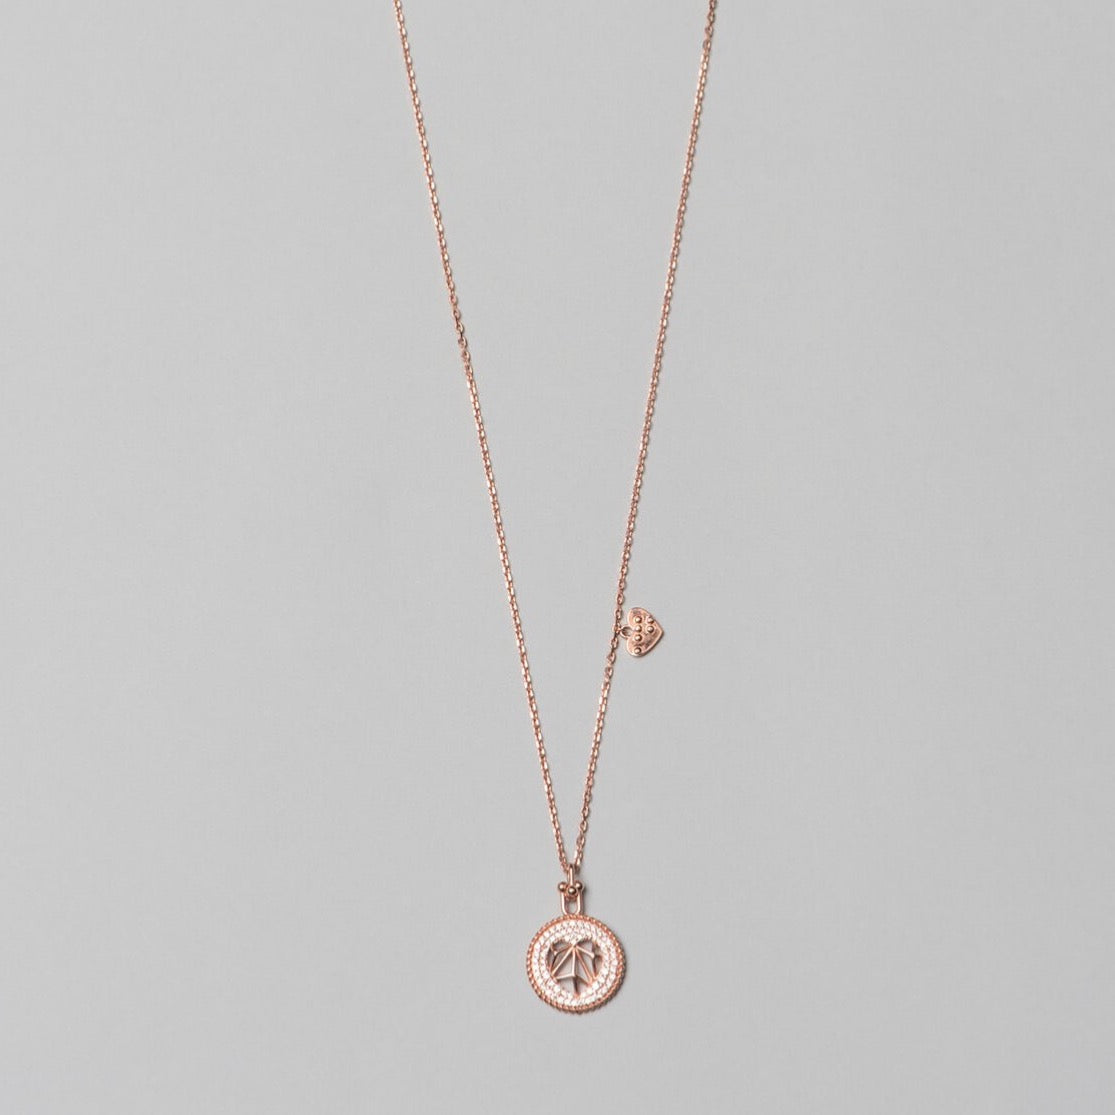 Photo of 925 sterling silver, rose gold plated necklace with white heart shape pendant, complete look.